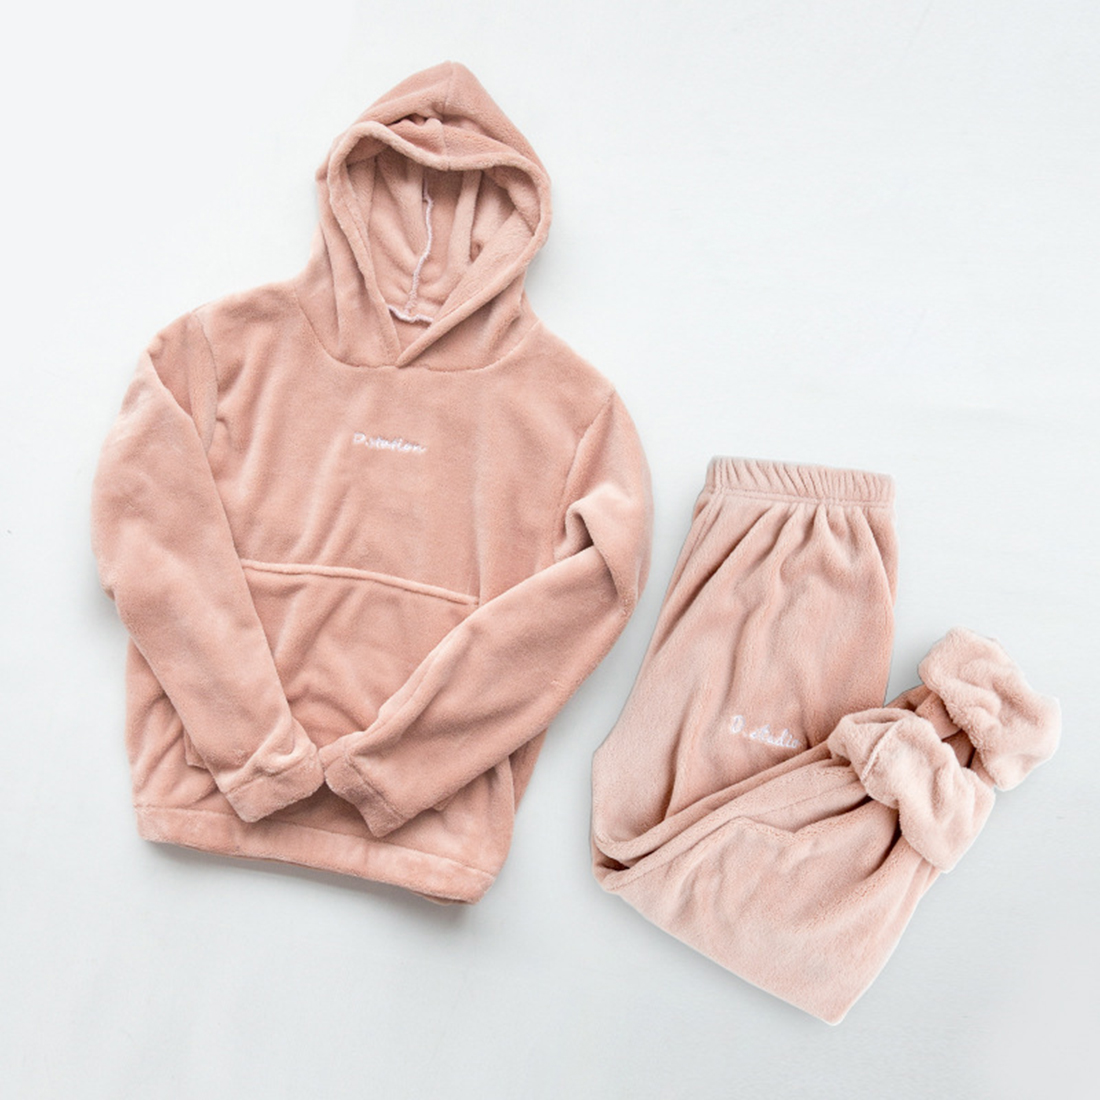 Jodimitty Autumn Winter Flannel Pajama Set Women Fleece Pajamas Sleepwear Homewear Thick Warm Coral Velvet Female Nightgown Suit